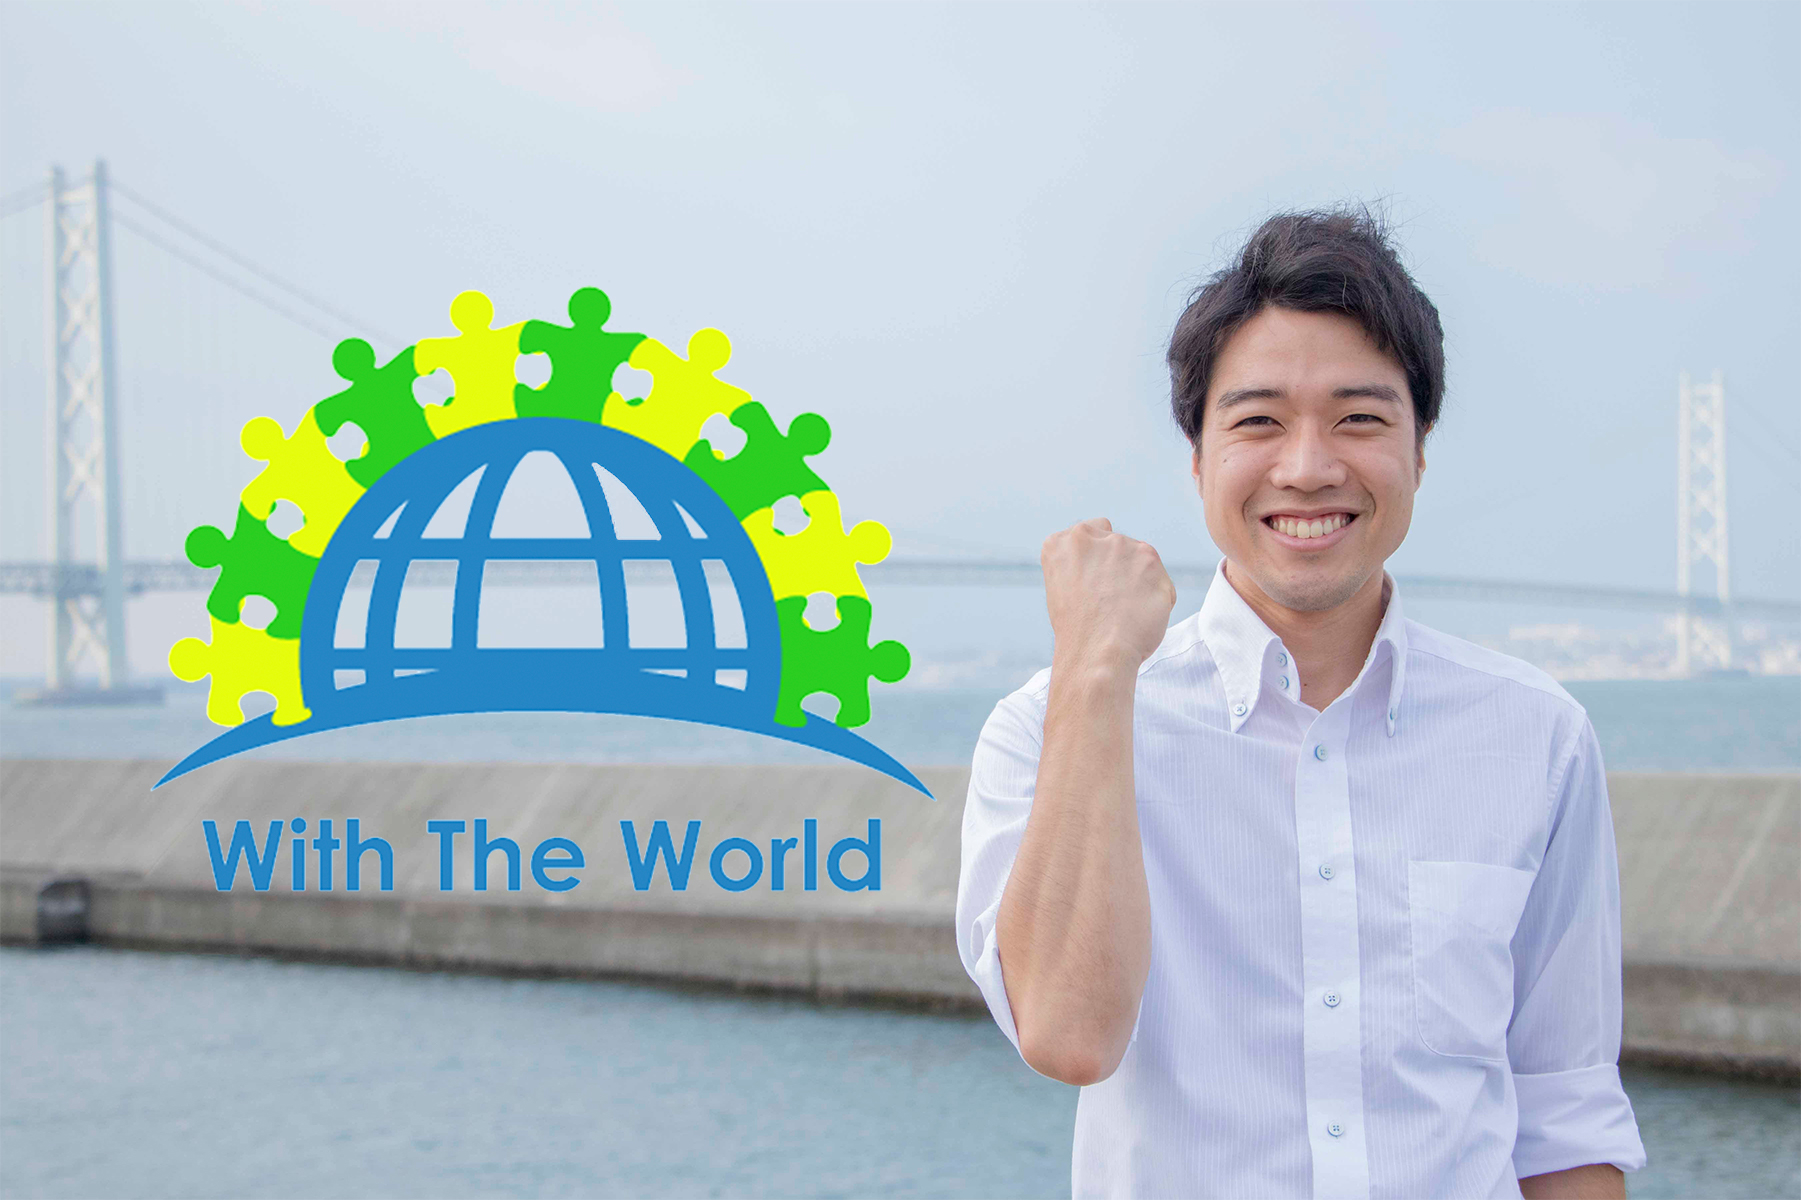 株式会社WithTheWorld